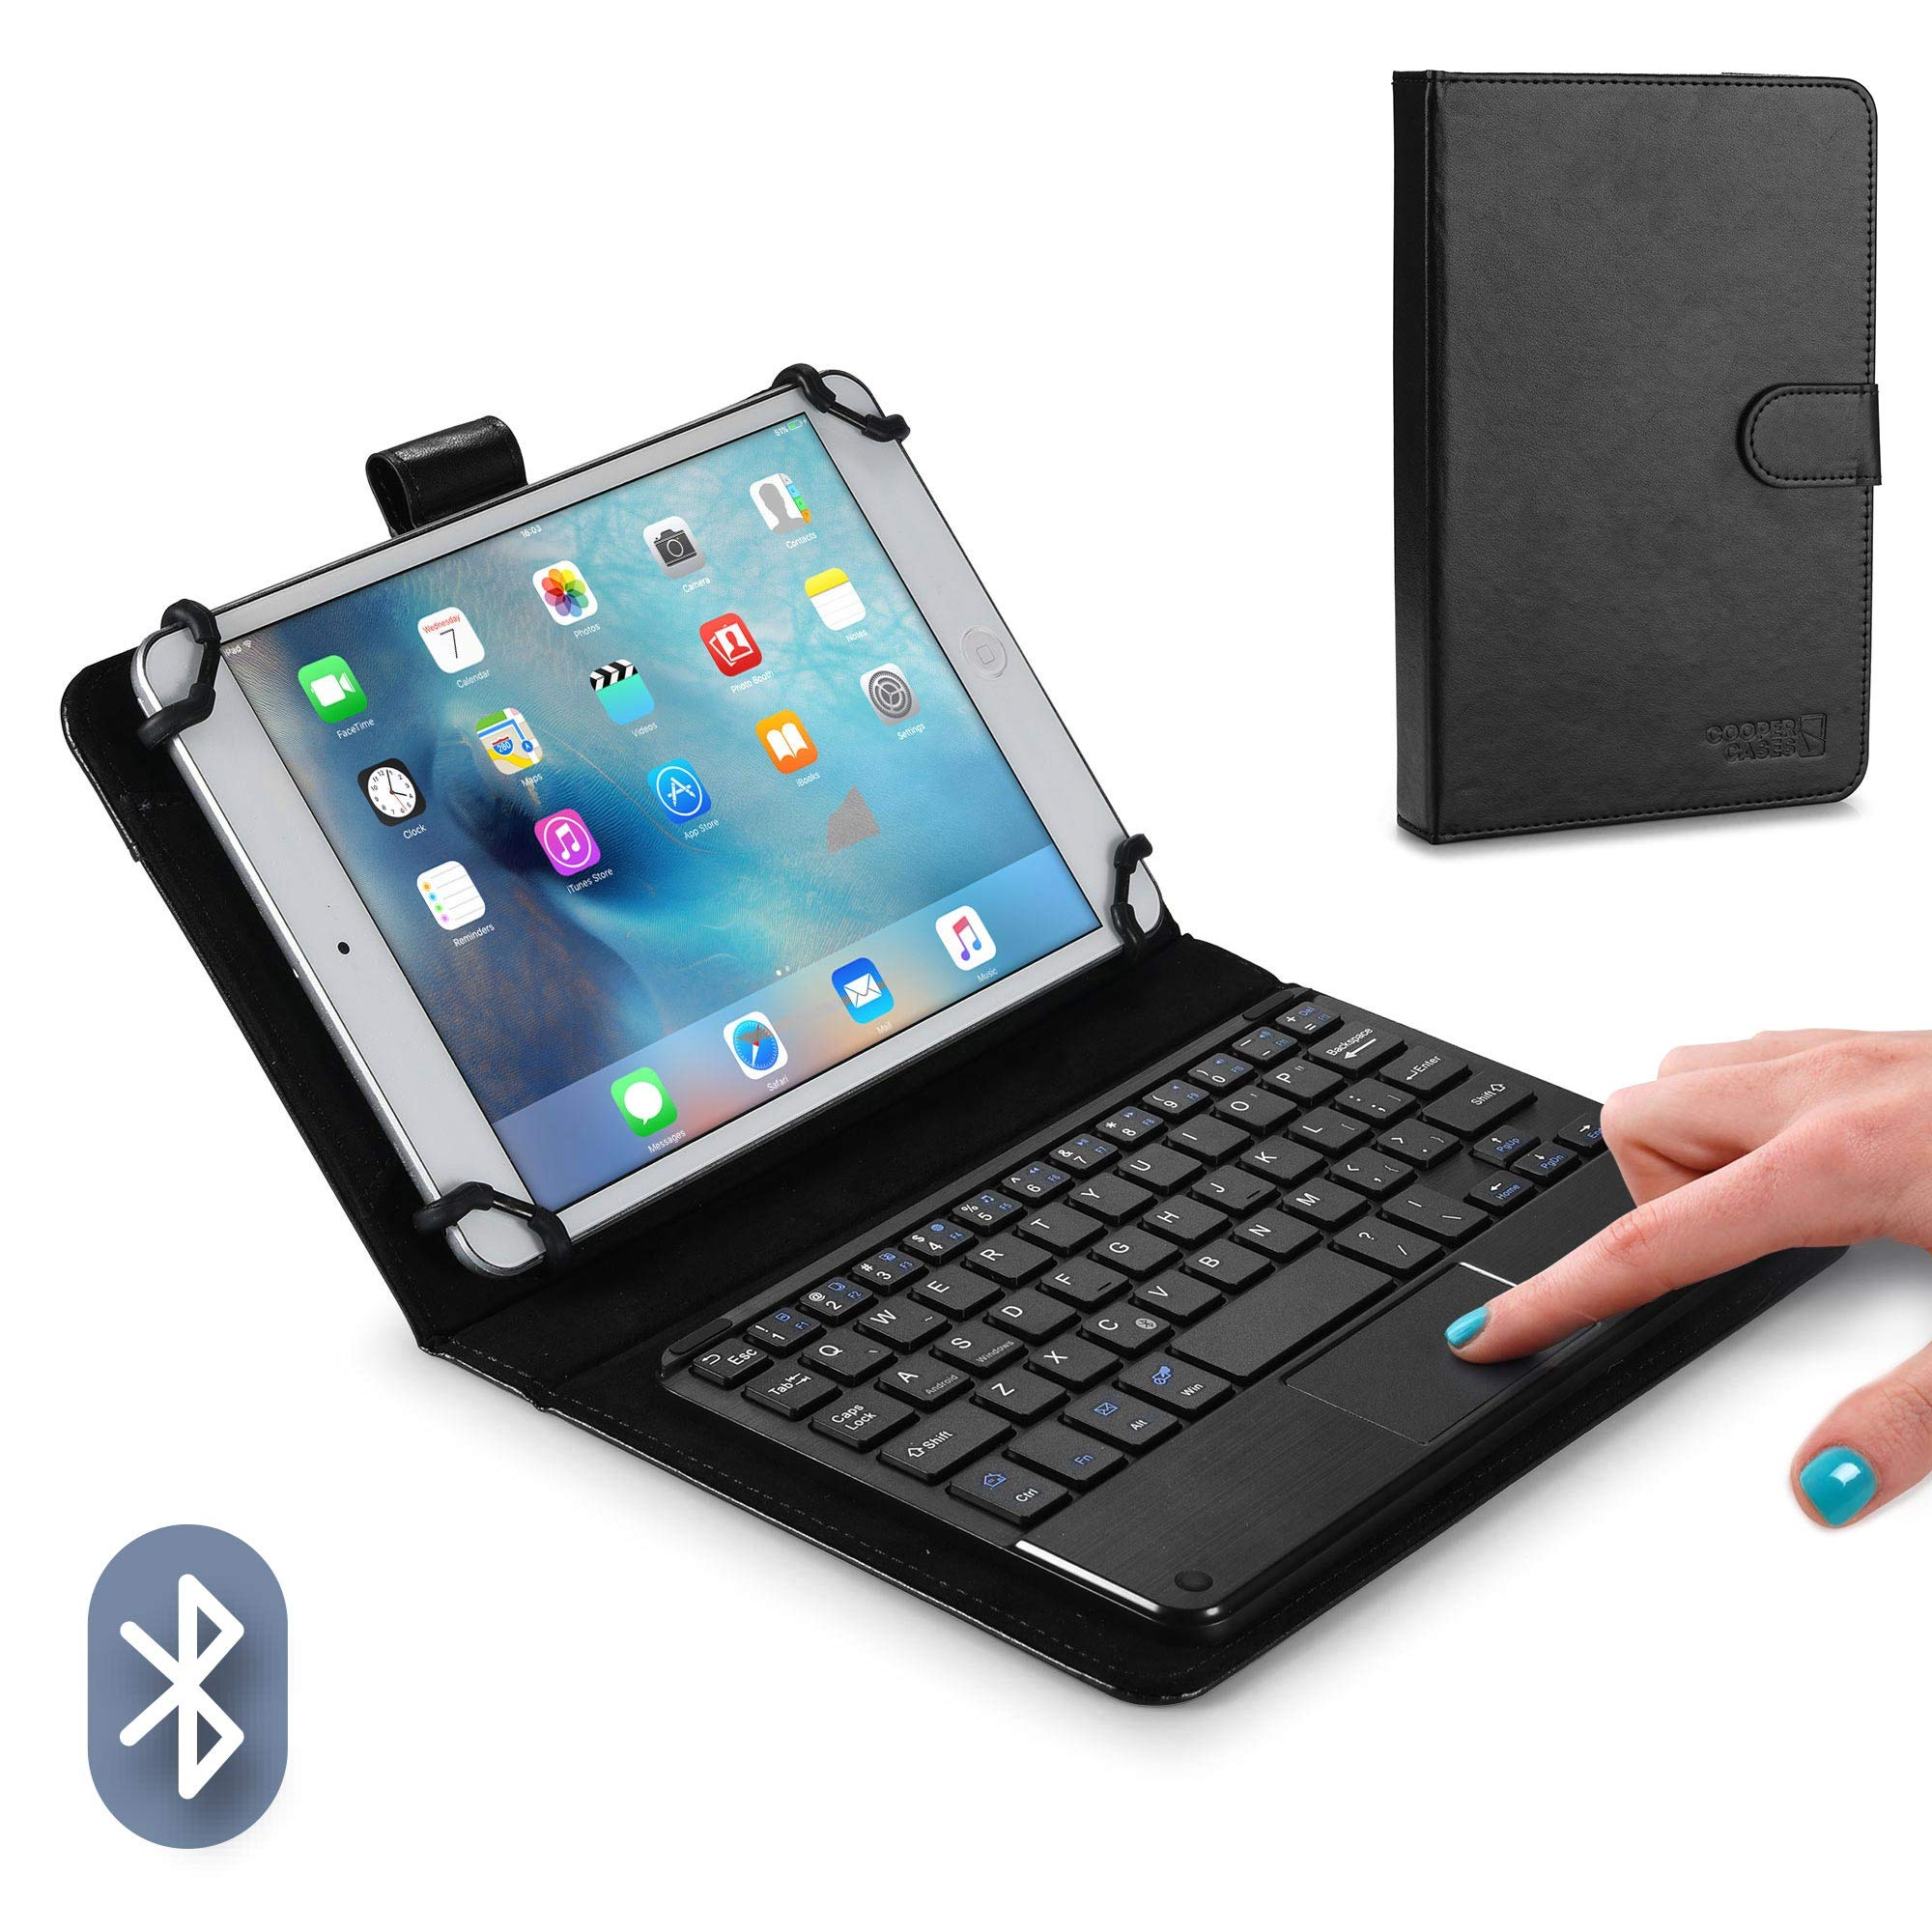 Cooper TOUCHPAD Executive Keyboard case for 7'' - 8'' inch Tablets | 2-in-1 Bluetooth Wireless Keyboard with Touchpad & Leather Folio Cover | Touchpad Mouse, Stand, 100HR Battery, 14 Hotkeys (Black)